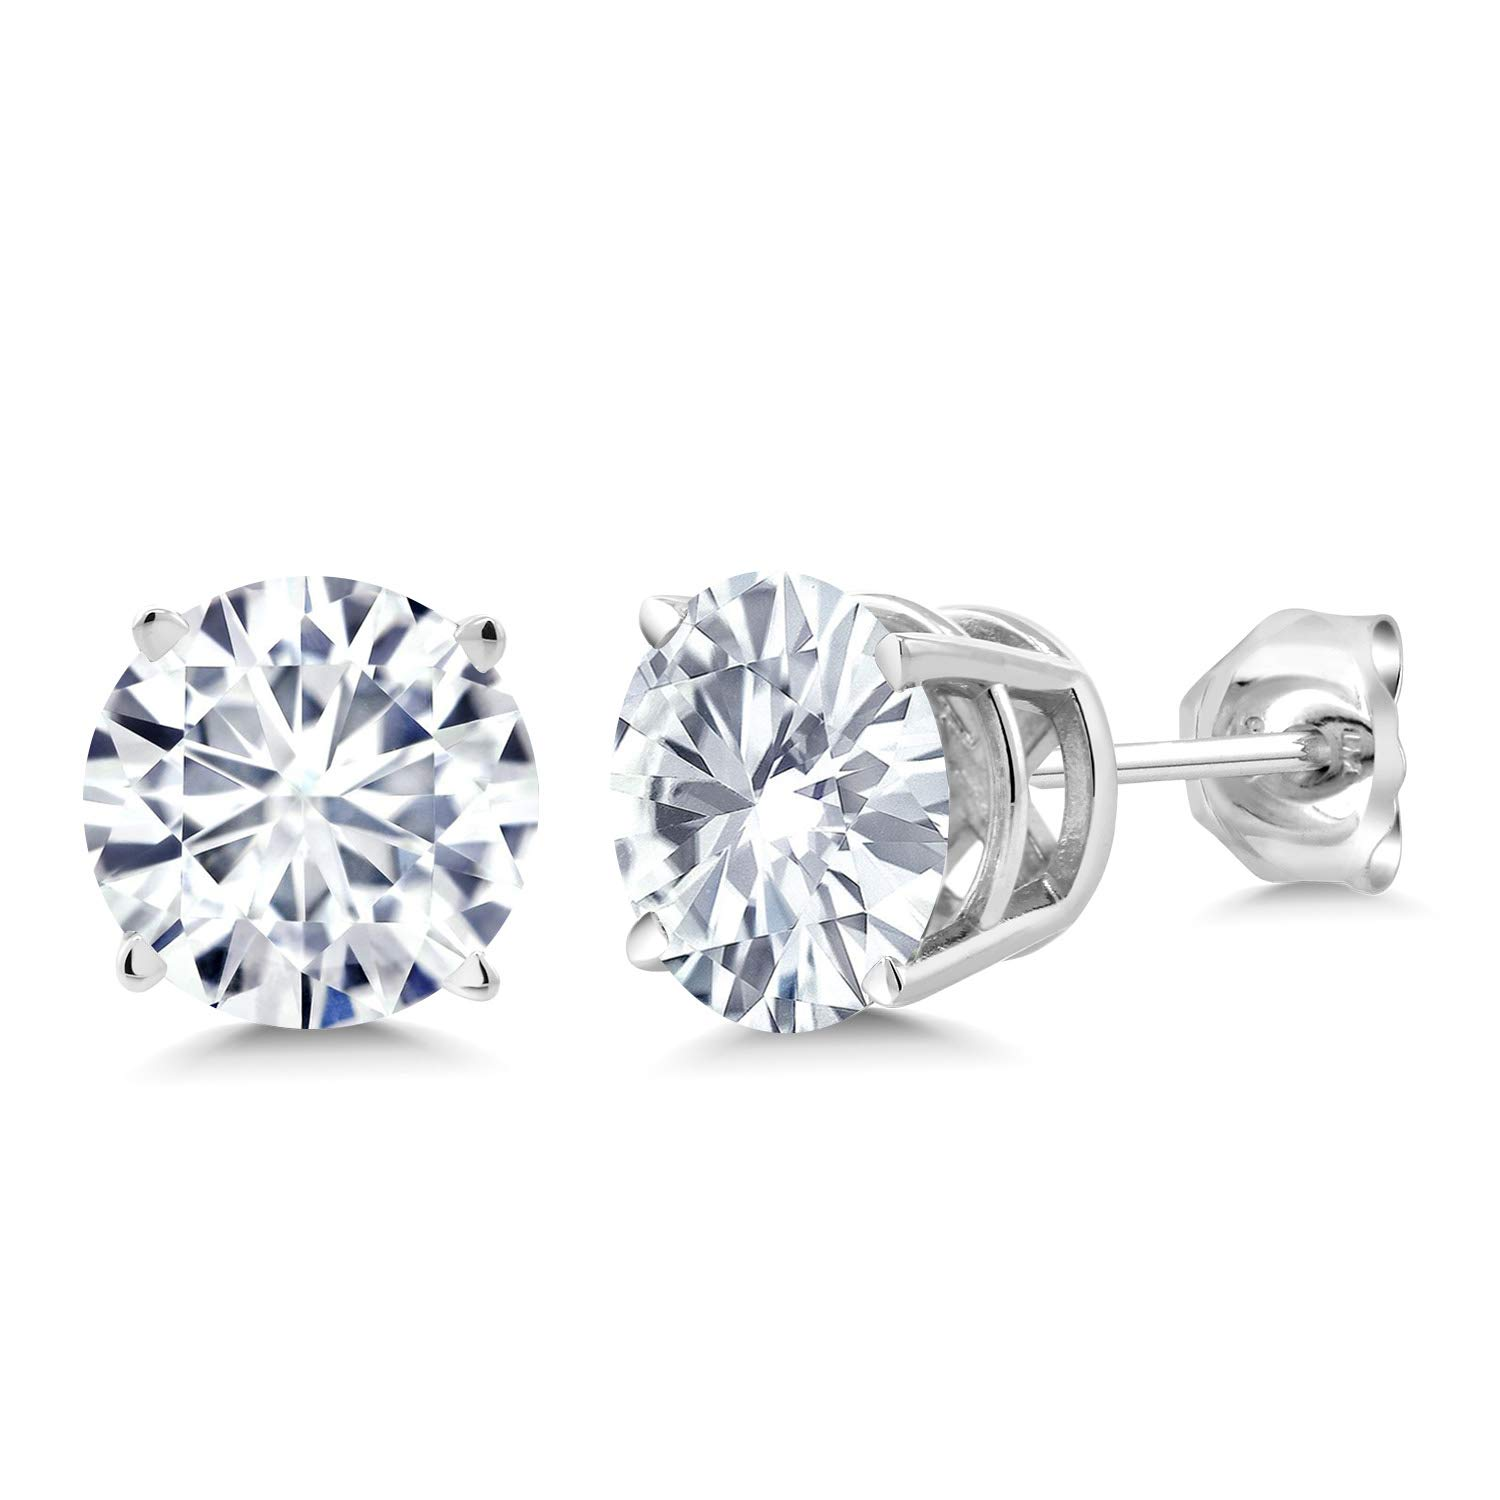 249c0934162ab 925 Sterling Silver Stud Earrings Forever Classic Round 2.00ct (DEW)  Created Moissanite by Charles & Colvard